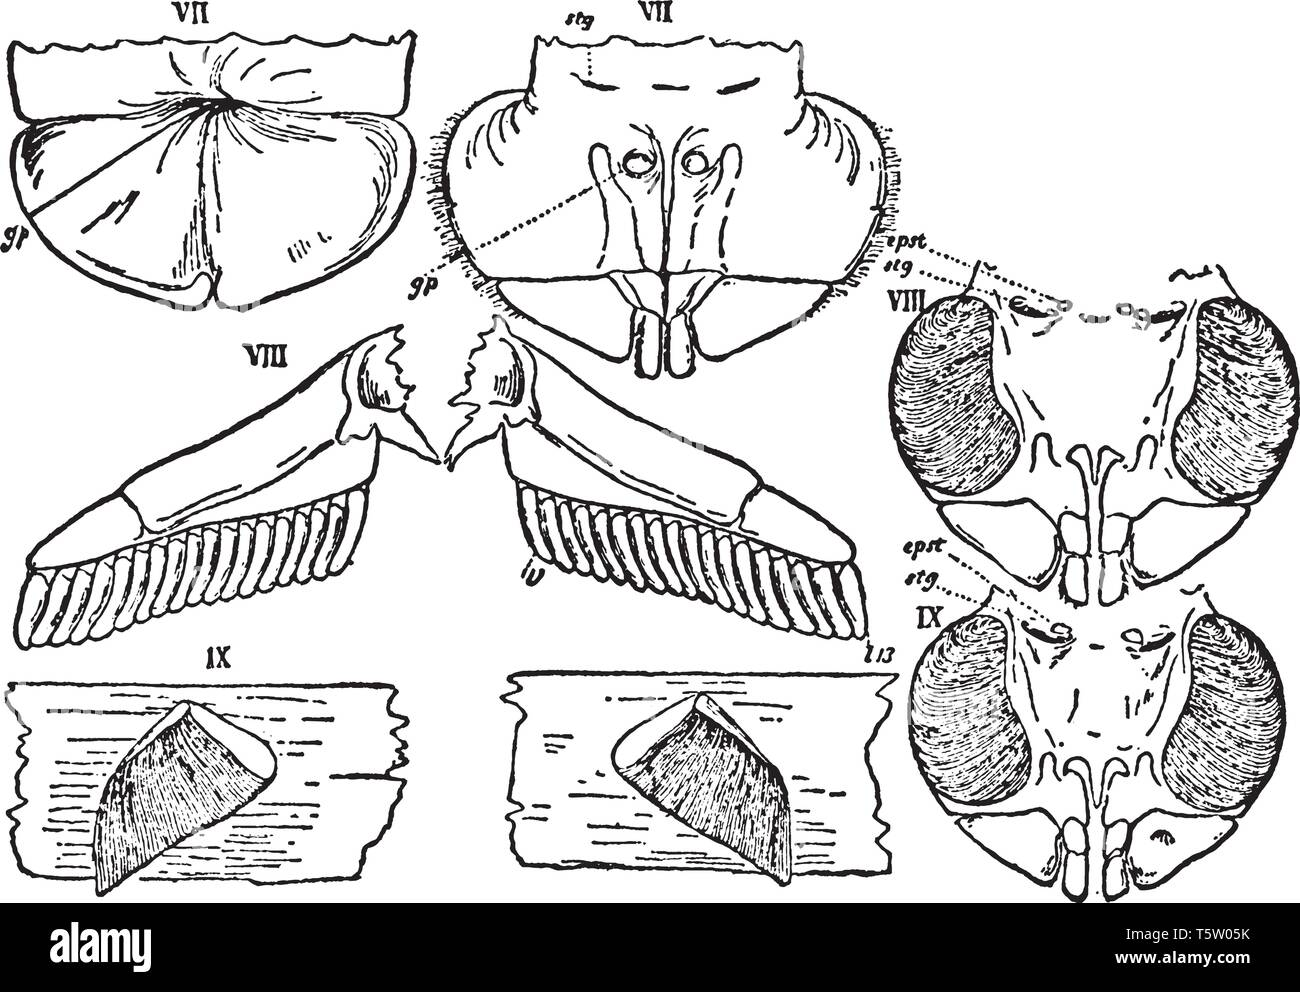 Mesosomatic appendages of Scorpio and Limulus compared, vintage line drawing or engraving illustration. - Stock Image